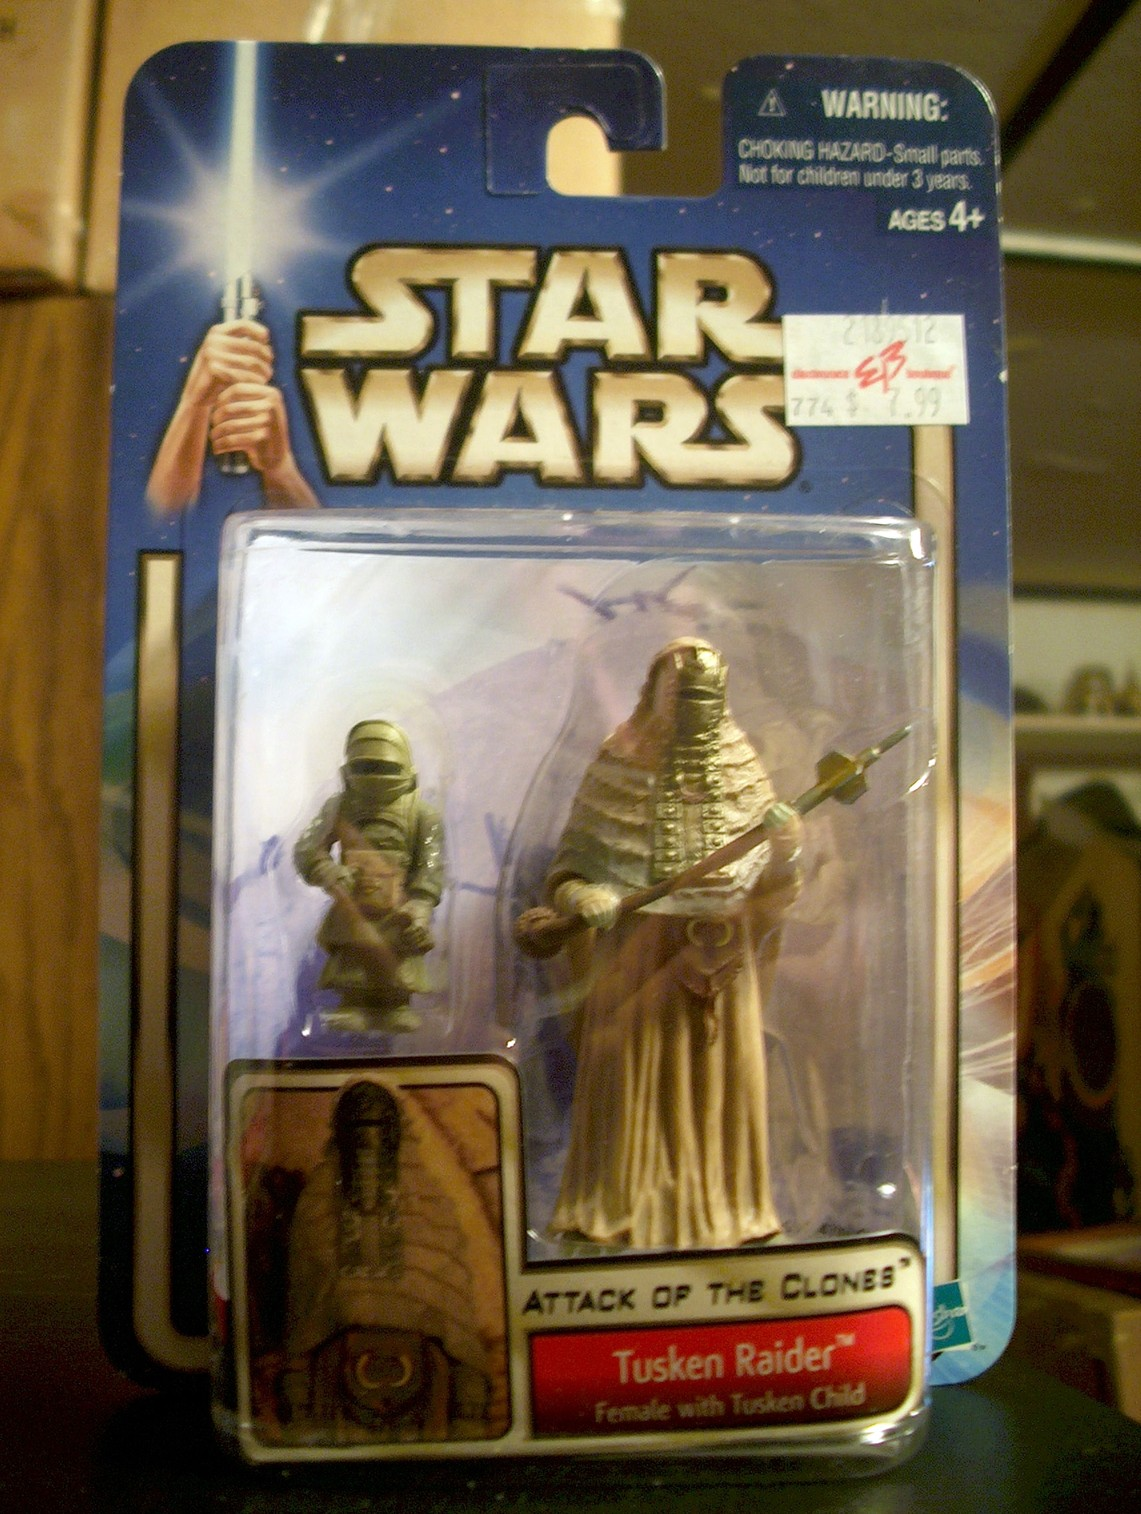 Tusken Raider - Female with Tusken Child (with background) (2-Pack)